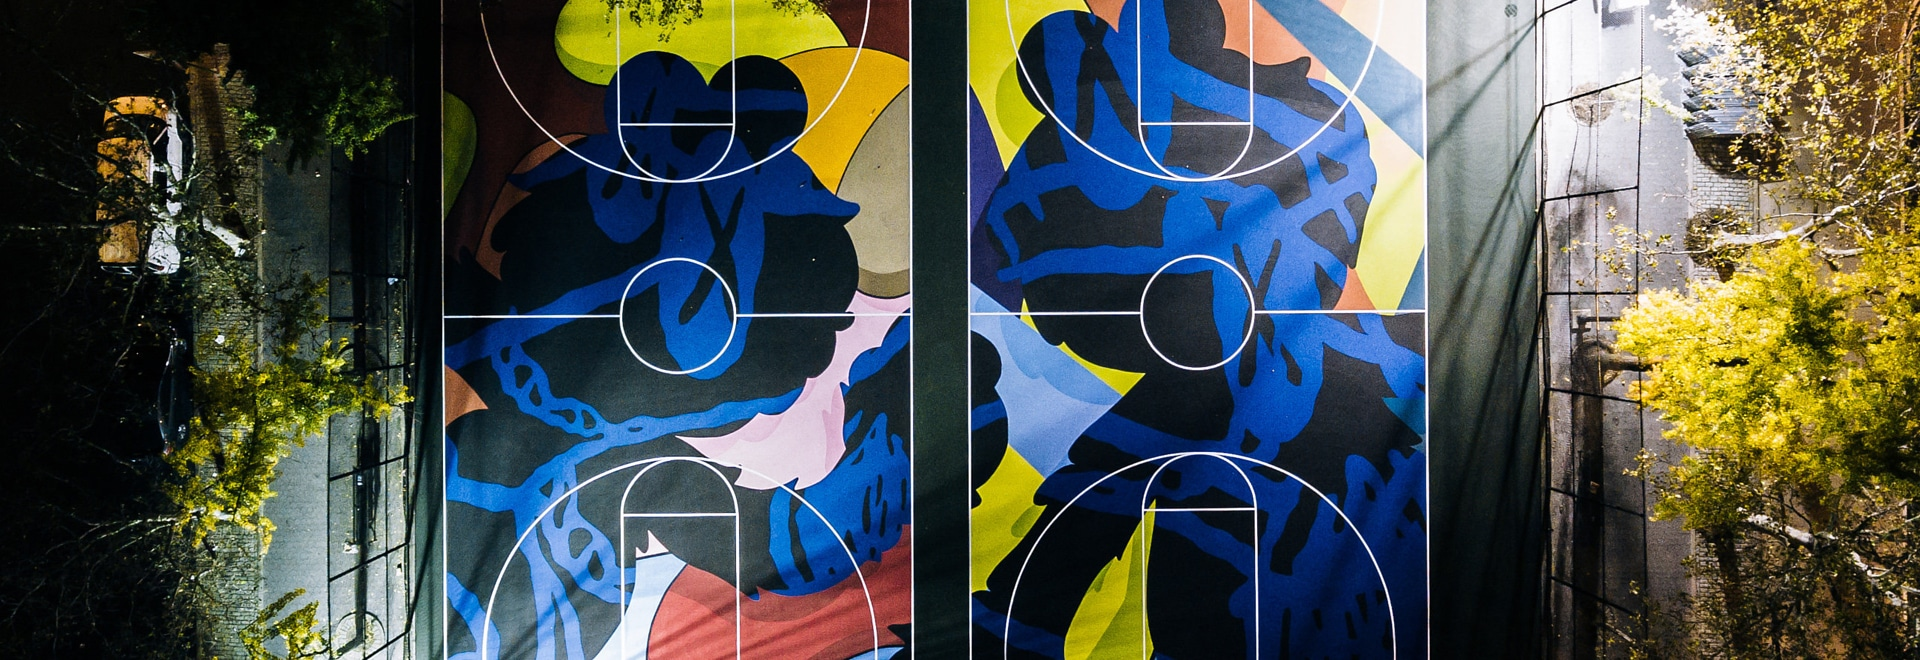 Kaws covers New York basketball courts in colourful murals